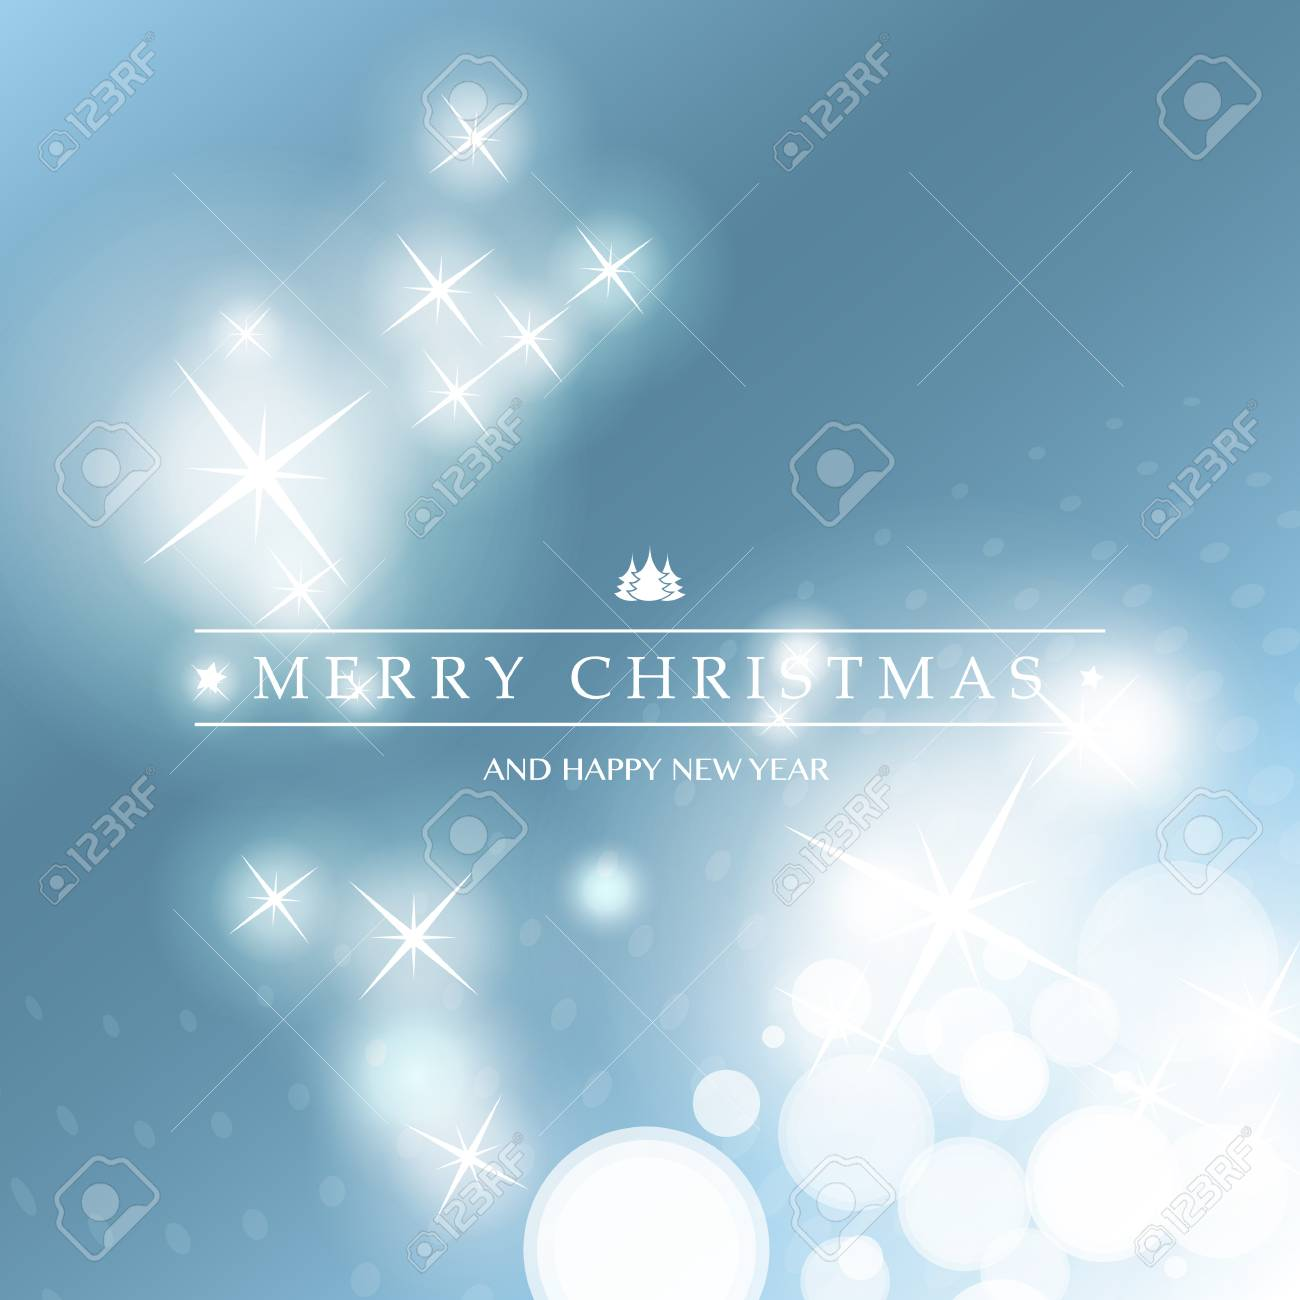 Merry Christmas - Colorful Modern Style Happy Holidays Greeting ...